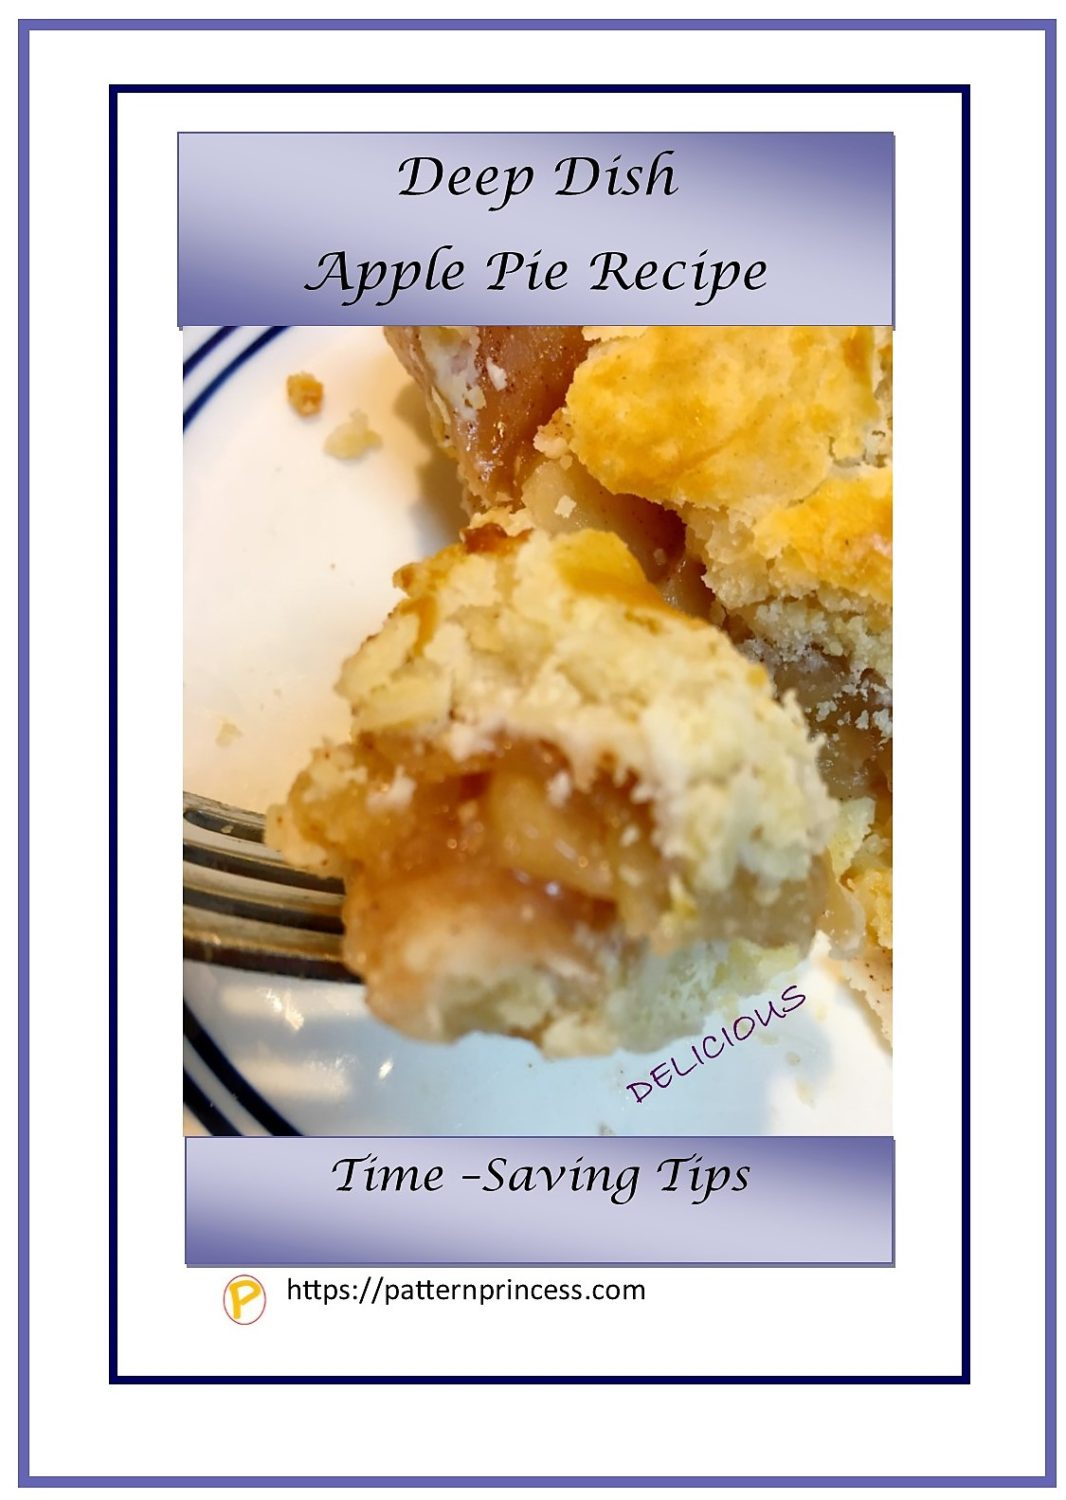 Deep Dish Apple Pie Recipe 1